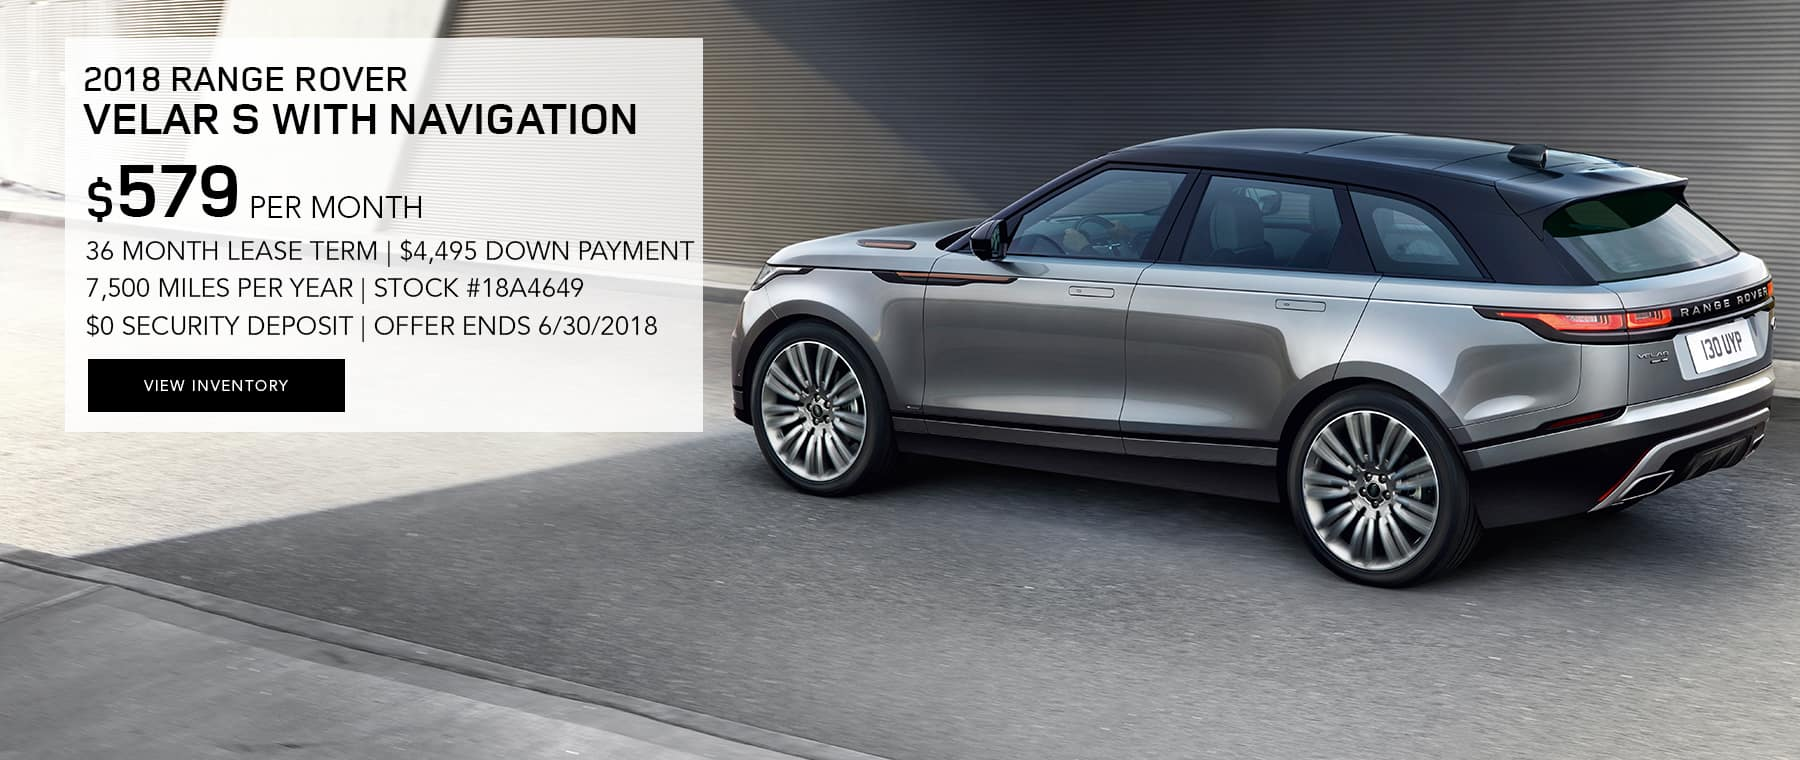 can bafo with boston dealership sport landrover coupon specials a rover save enjoy discovery land nov our new on lease you connecticut special ocharleys deals near at